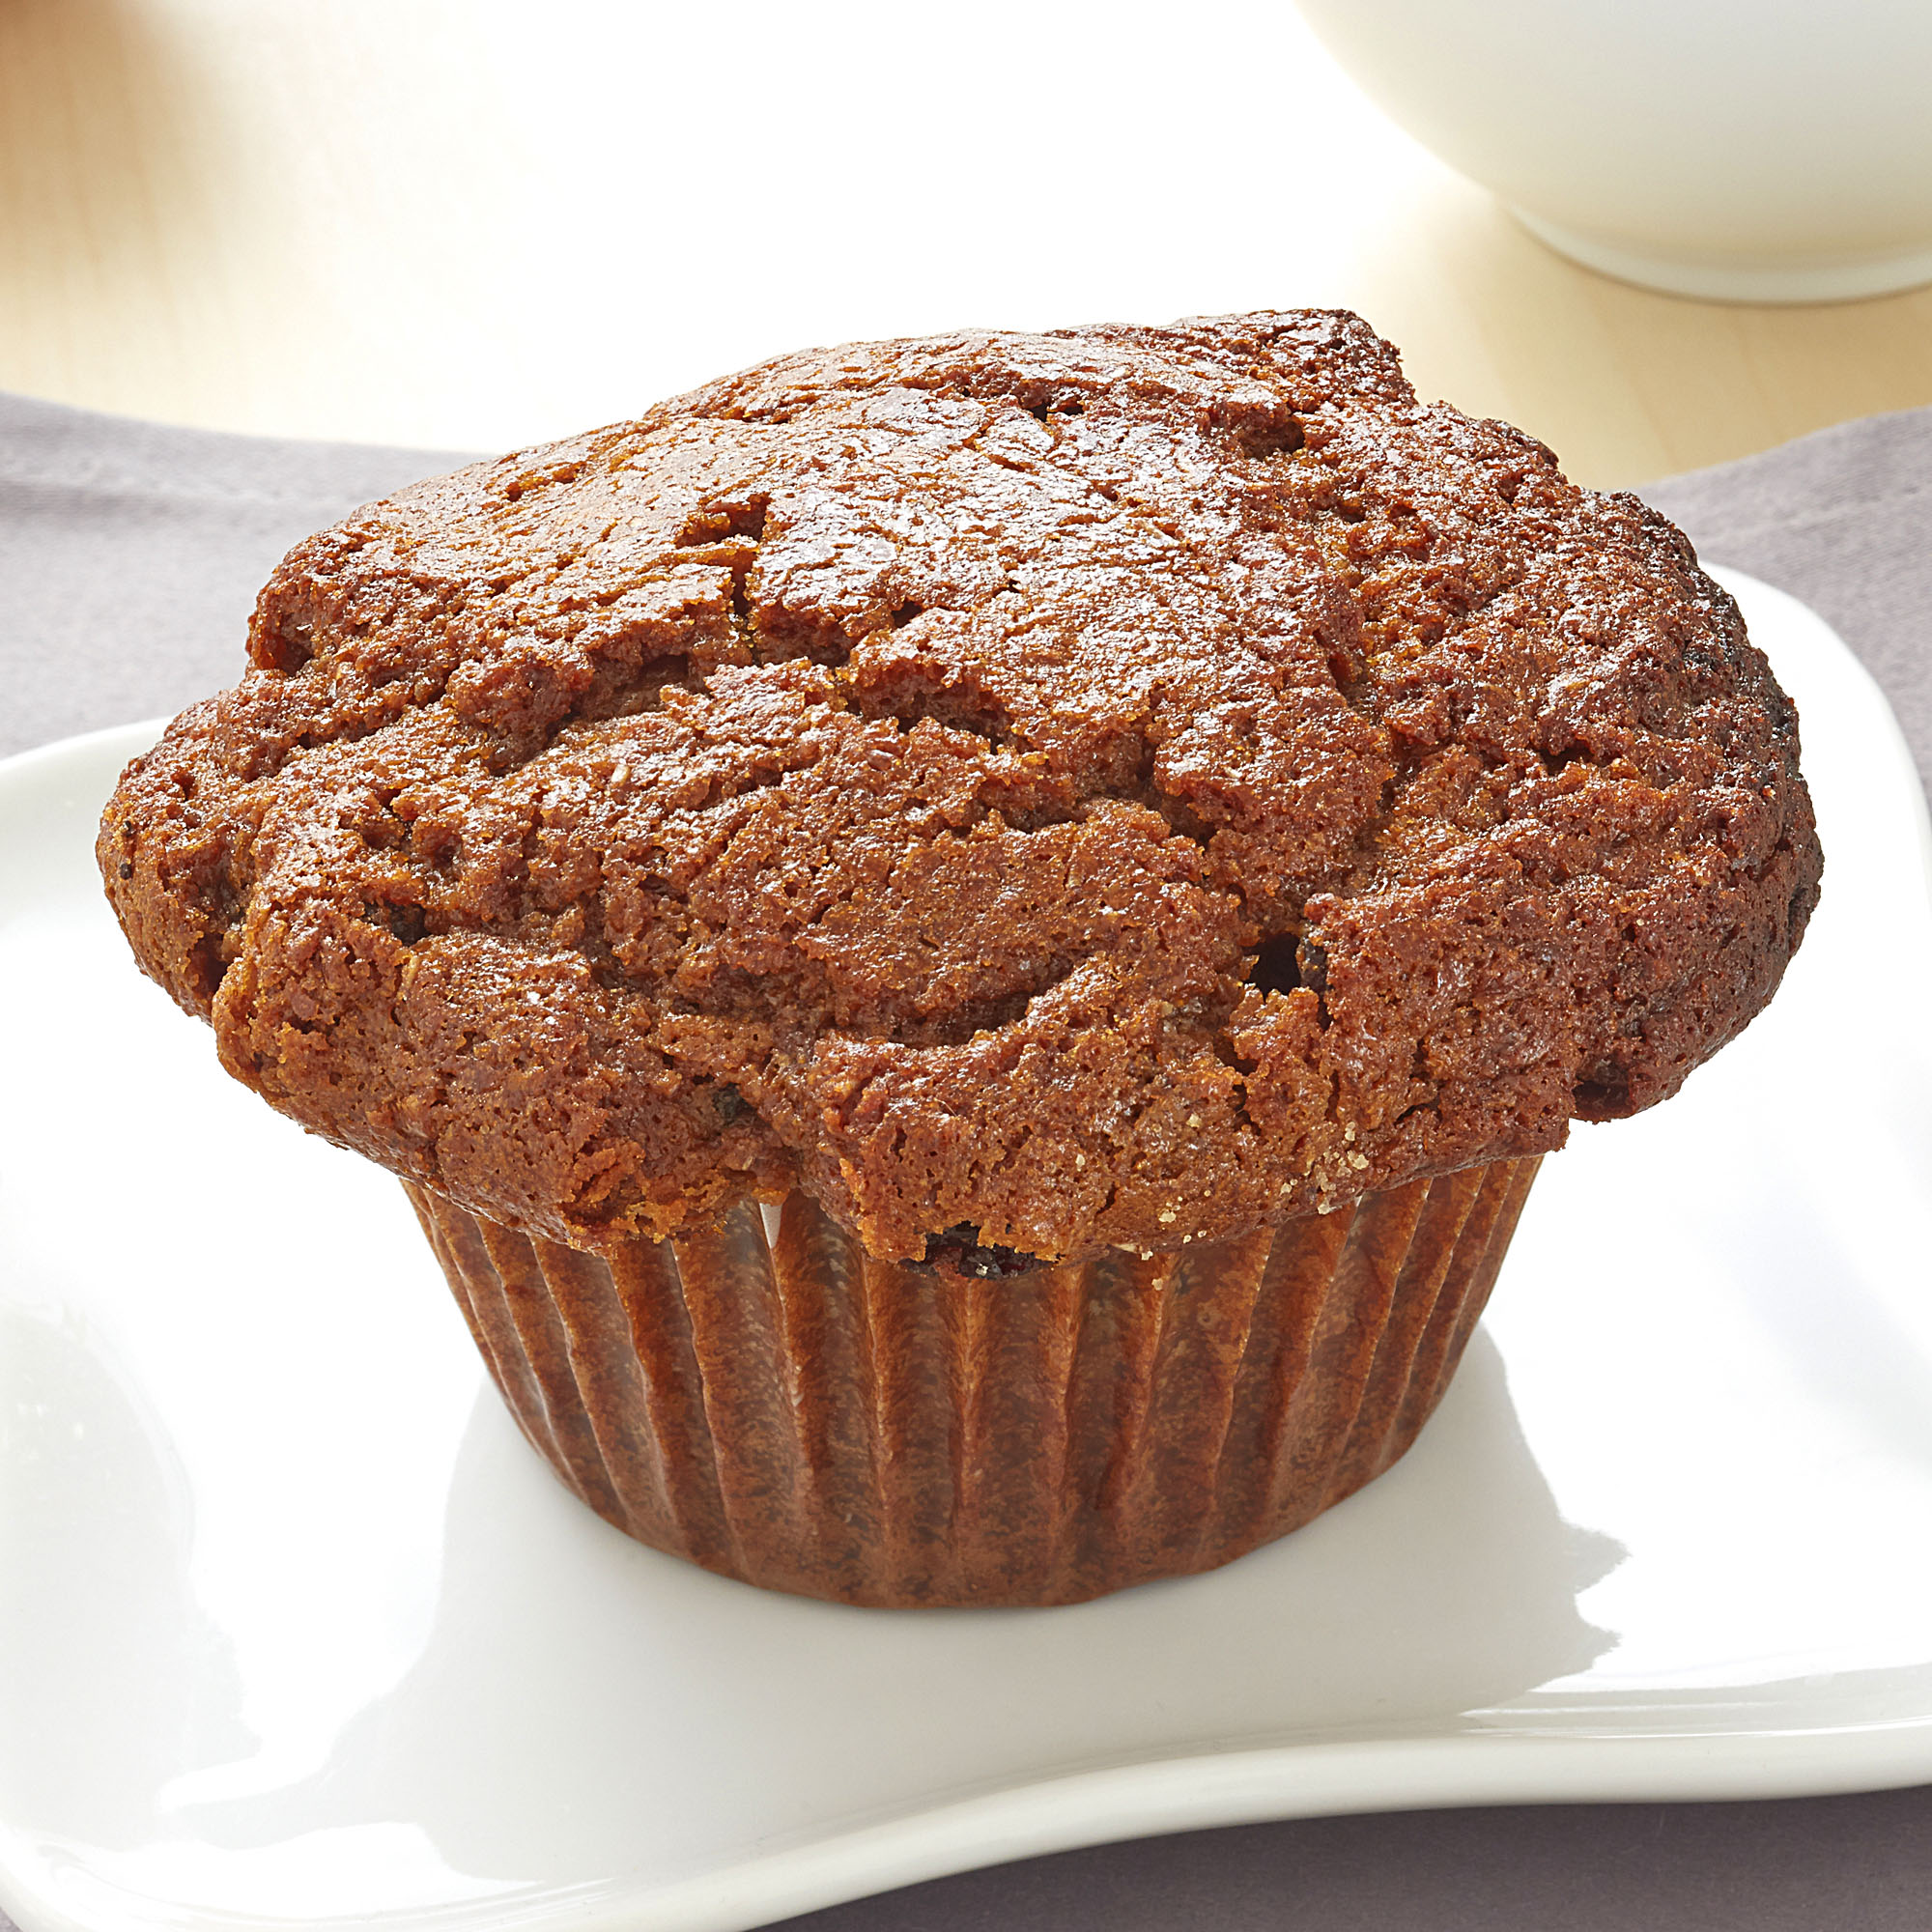 Raisin Bran Muffin - Little Pie Company